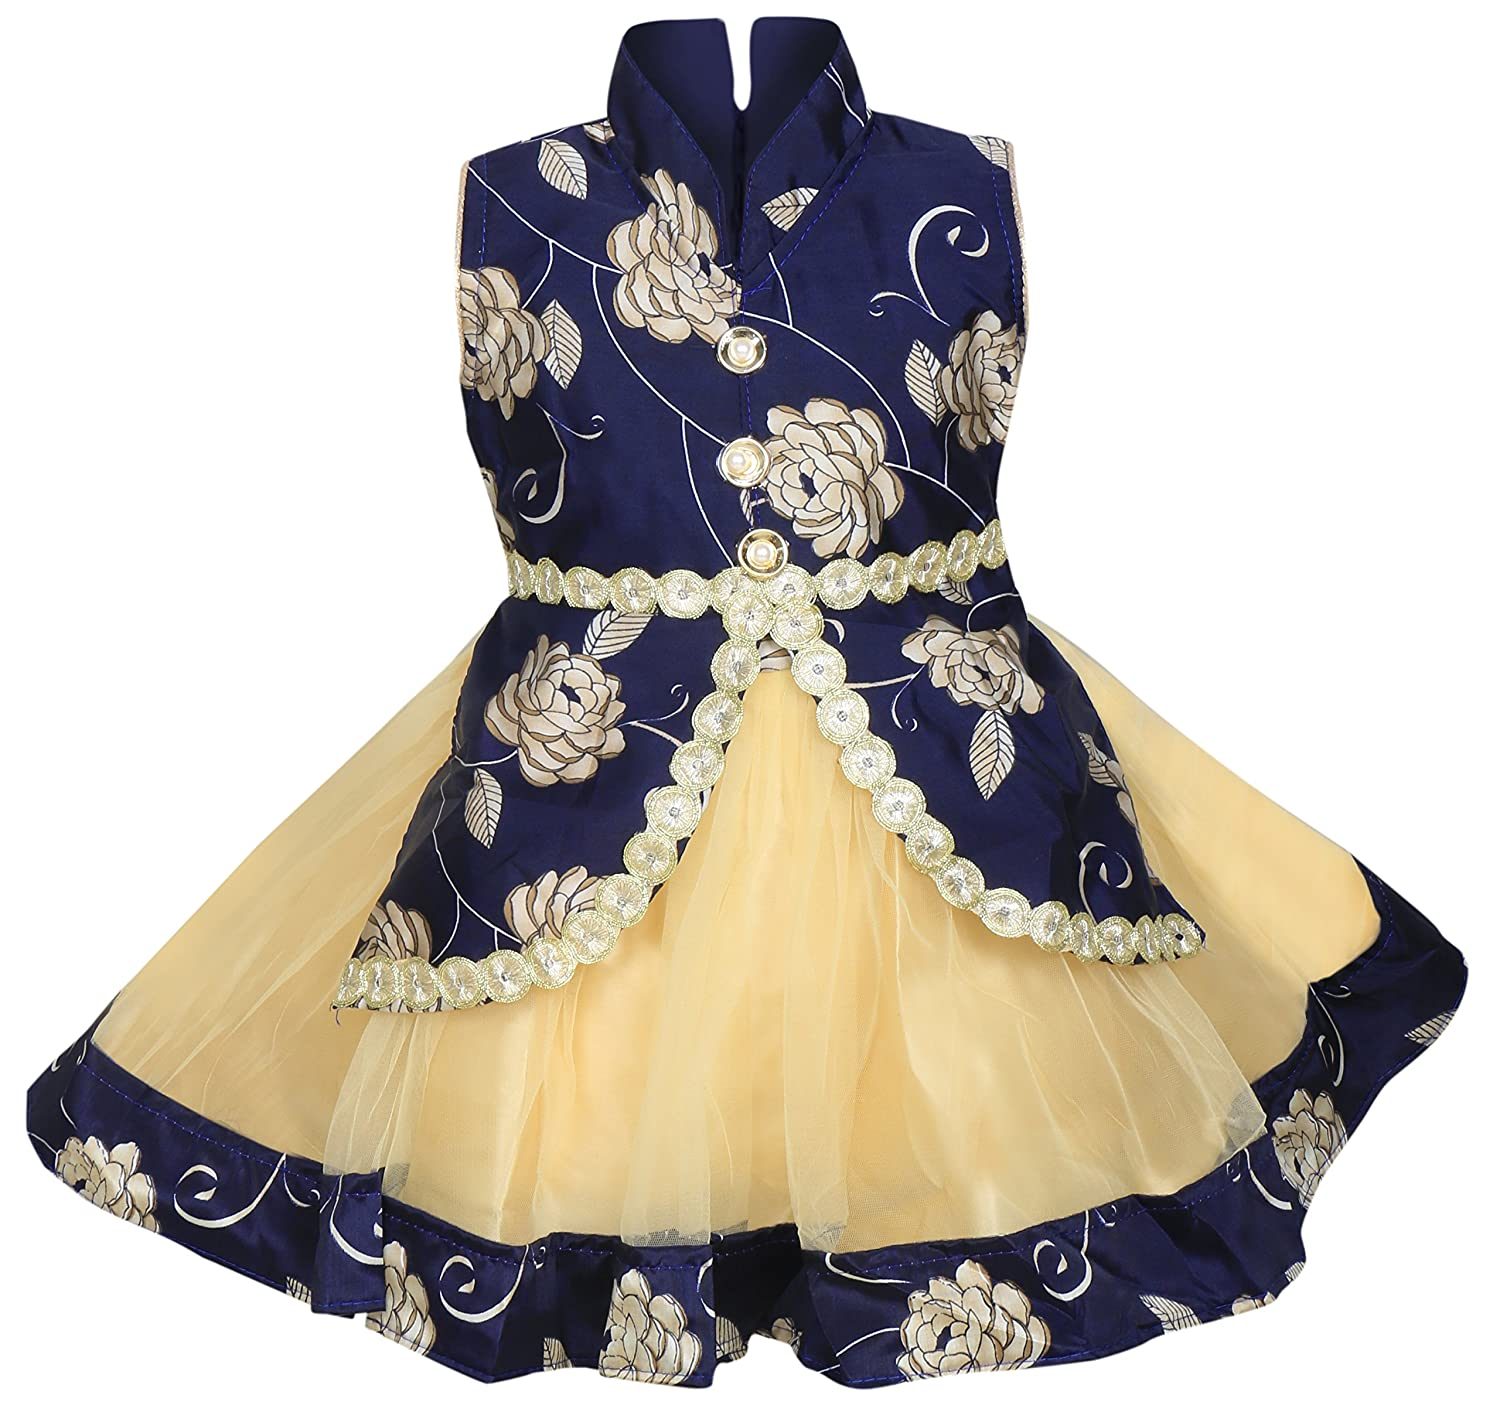 Mpc Cute Fashion Baby Girl s Satin and Soft Net Frock Dress For